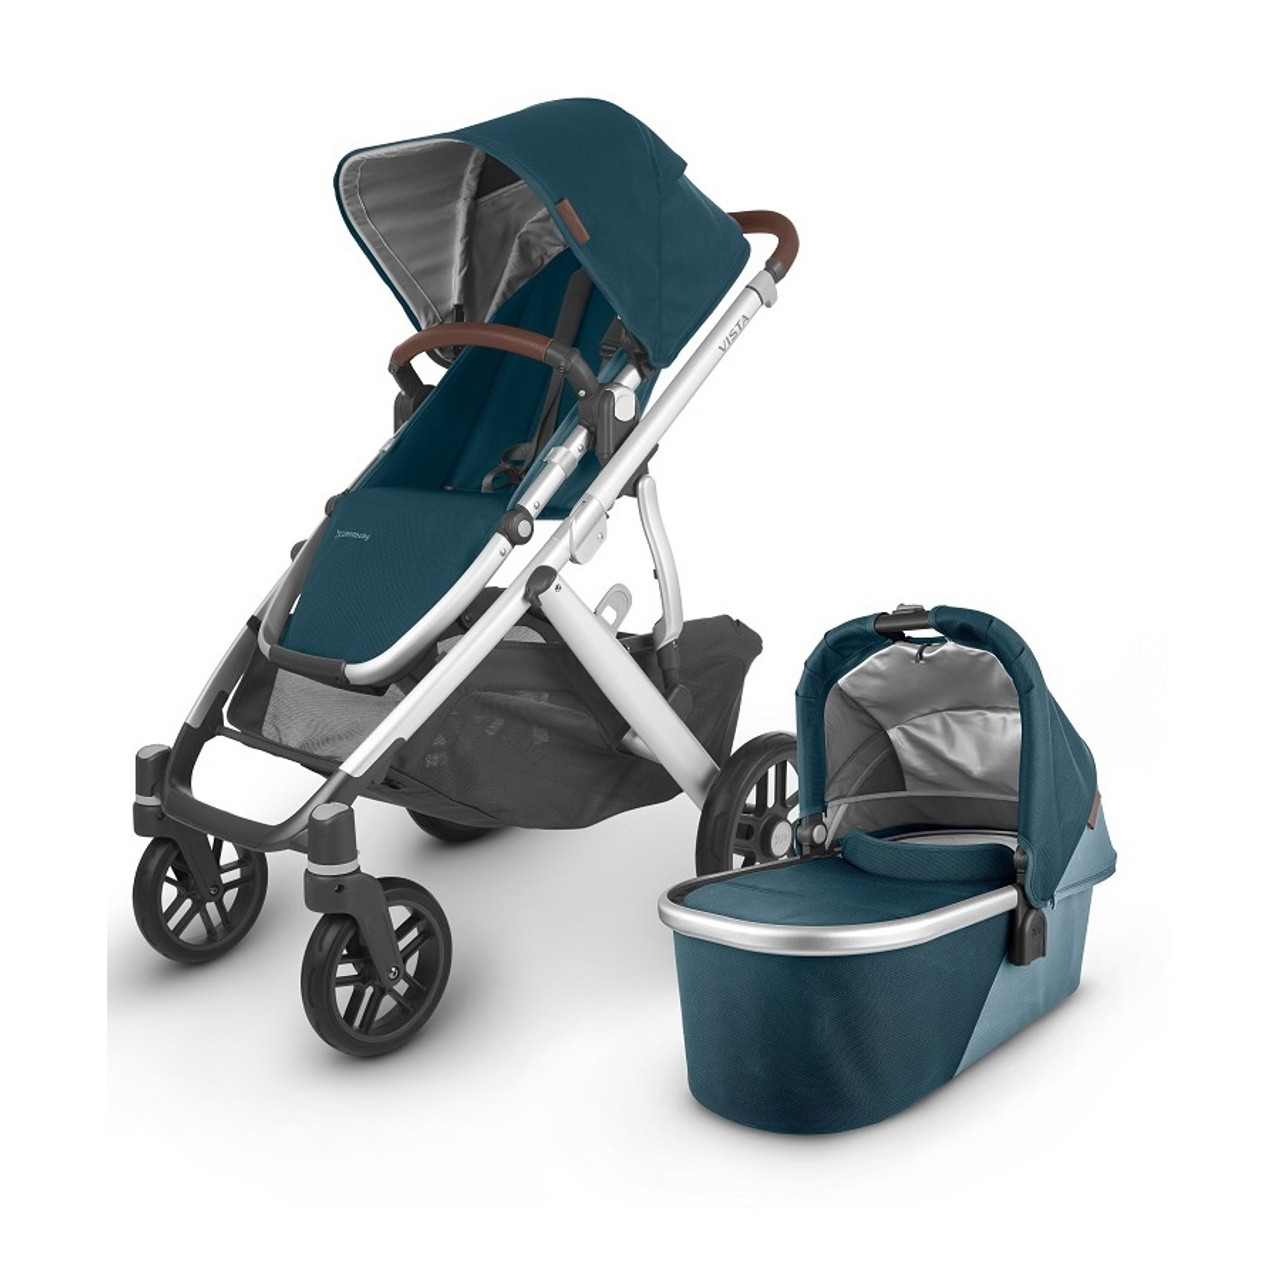 UPPAbaby VISTA pram has a one step fold with or without the toddler seat attached.